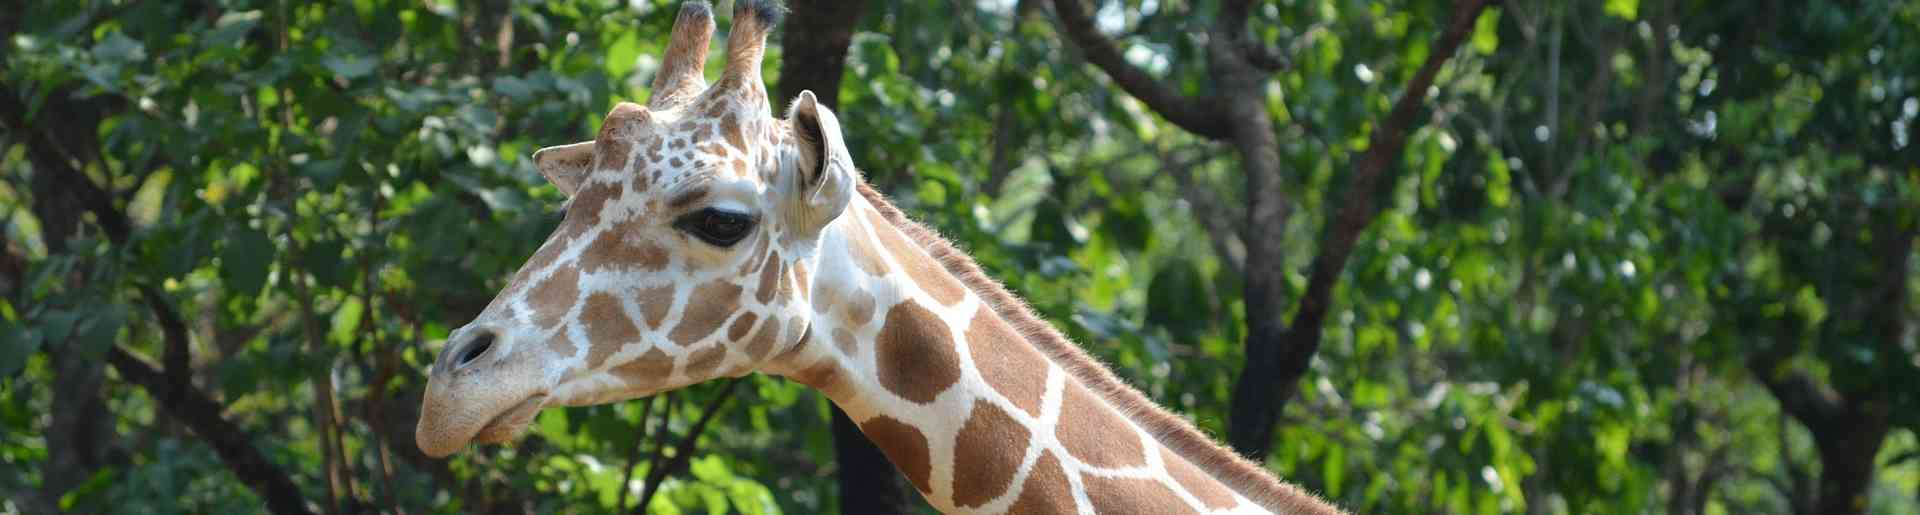 girafe zoo de beauval